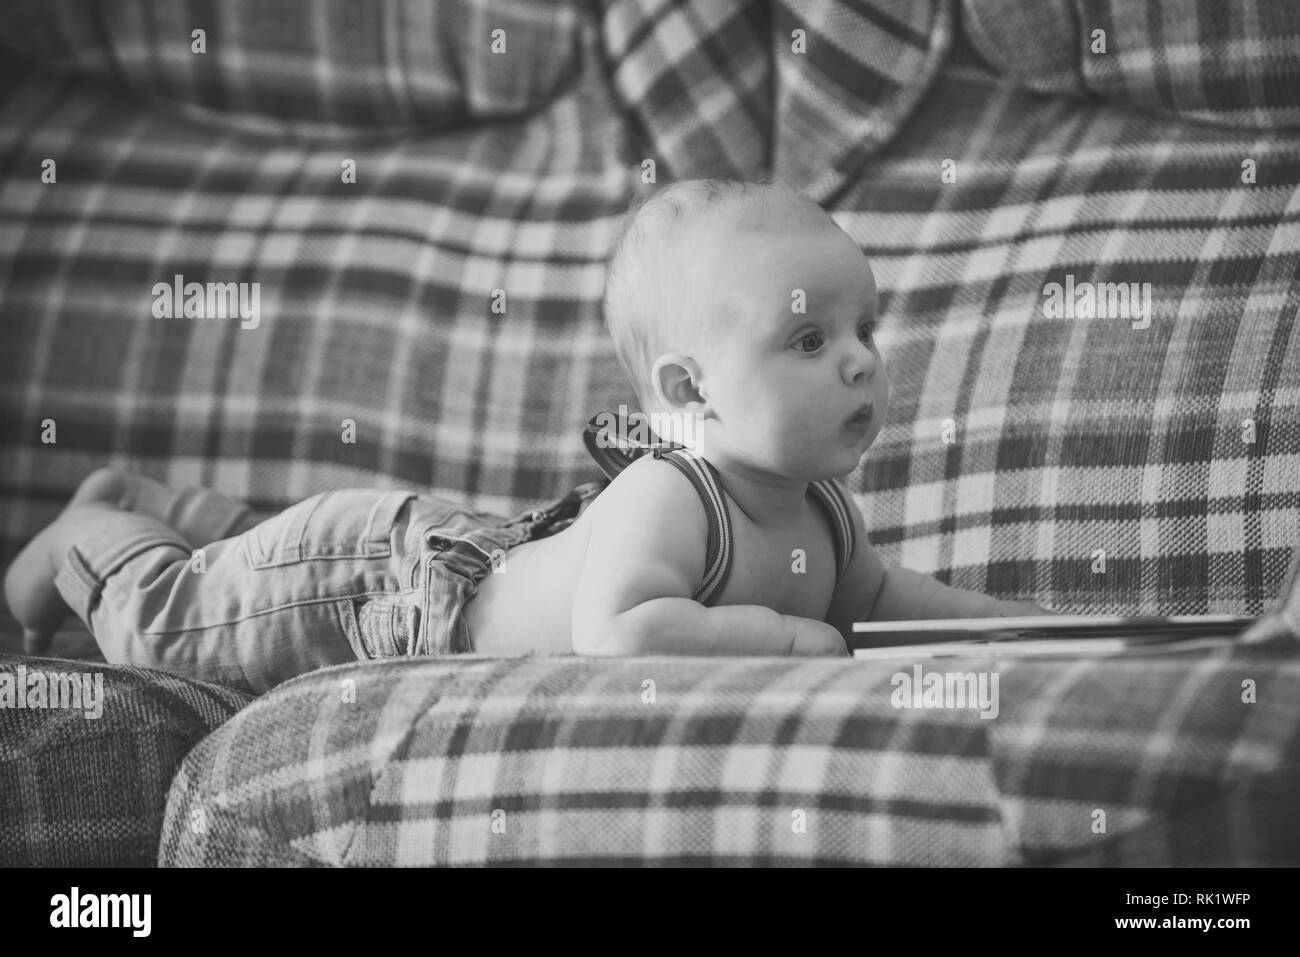 Infant wear jeans and suspenders at home - Stock Image